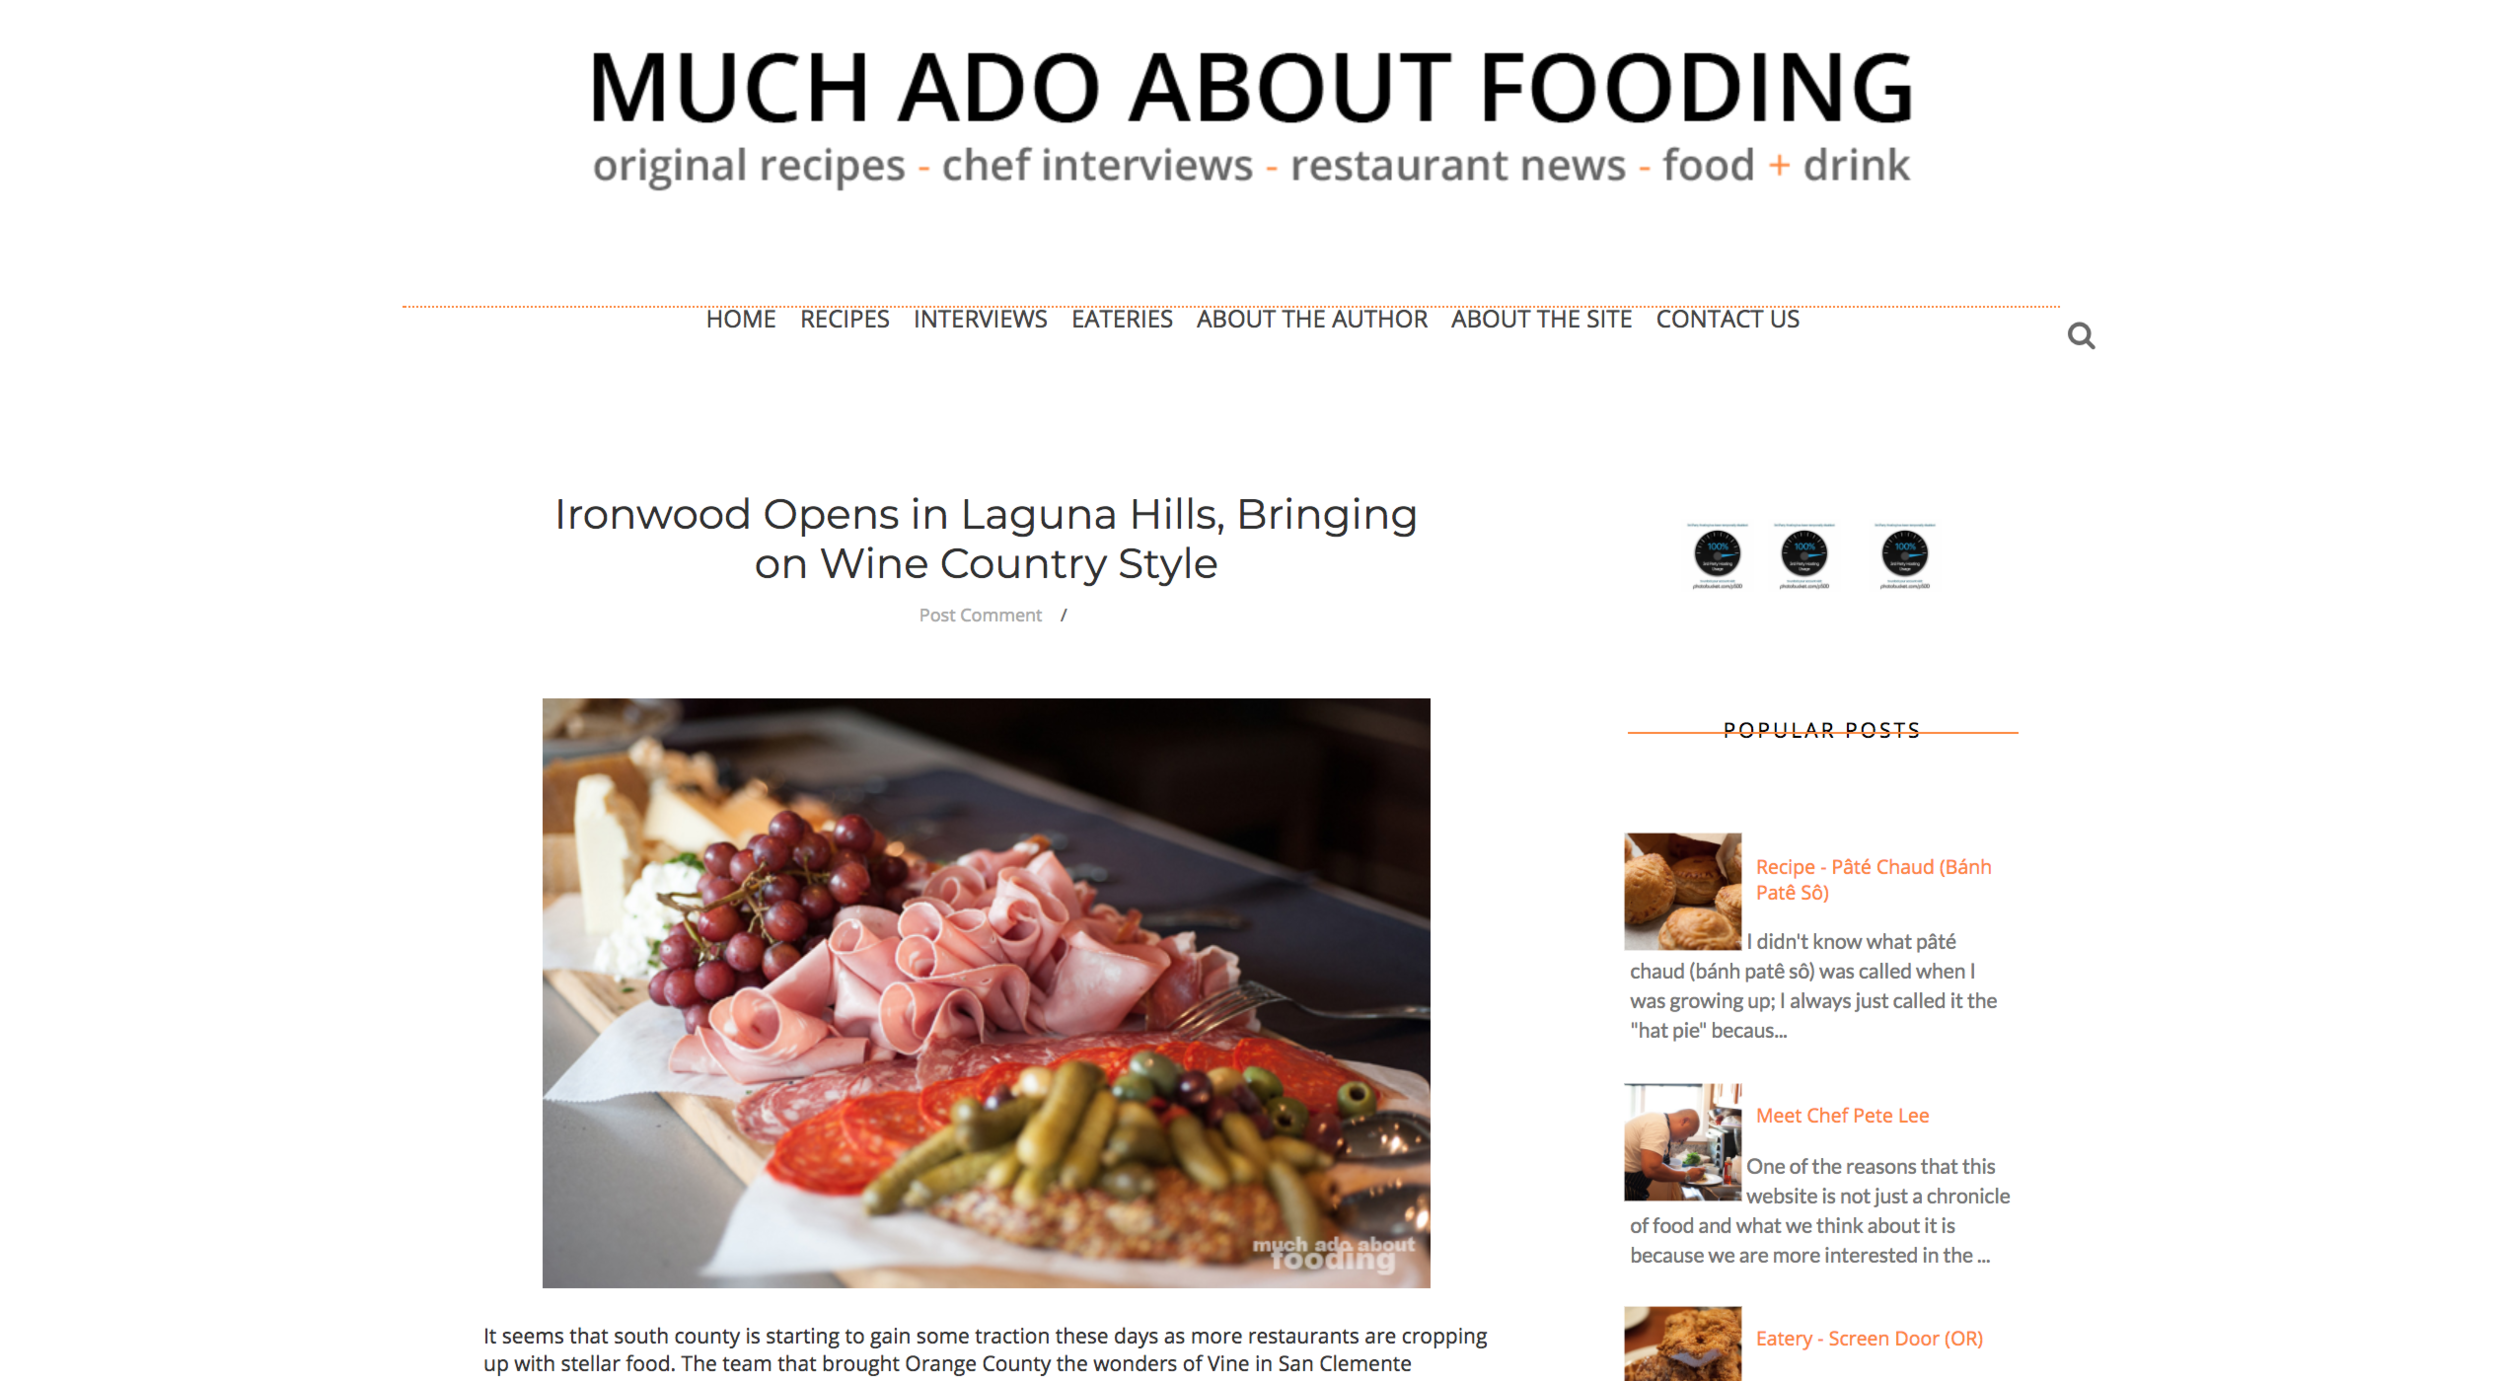 Much Ado About Fooding - Olea